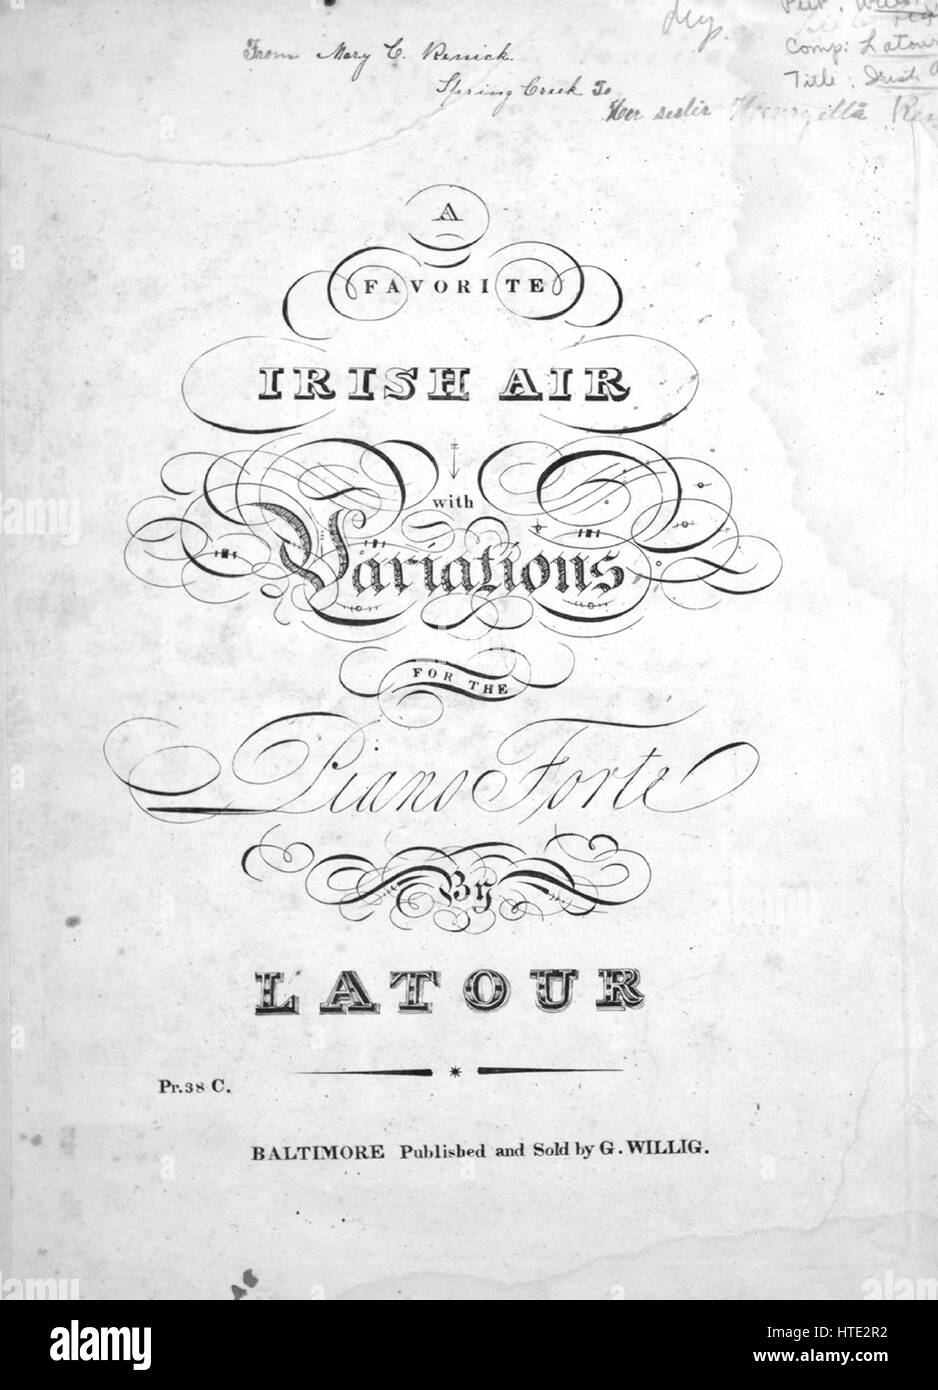 Sheet music cover image of the song 'A Favorite Irish Air With Stock